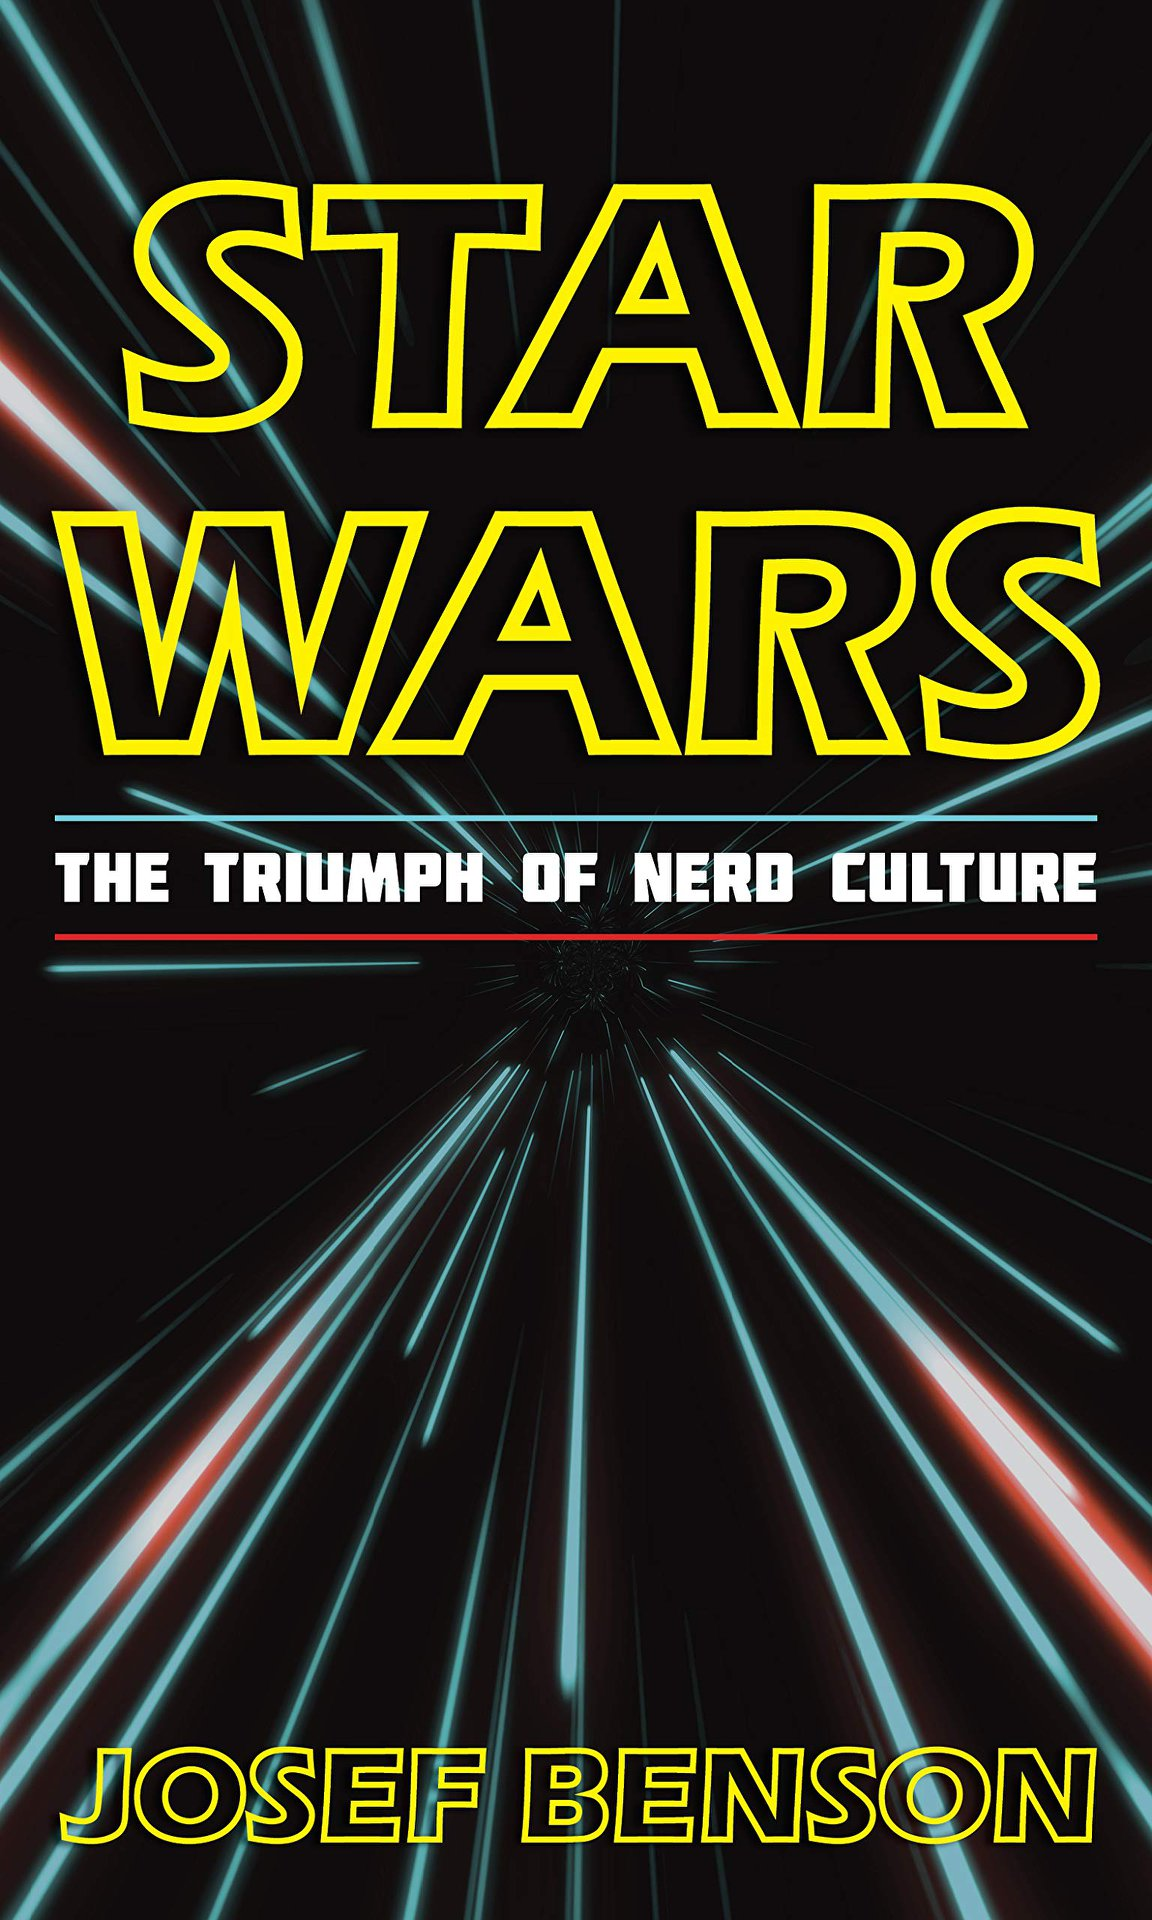 Star Wars: The Triumph of Nerd Culture